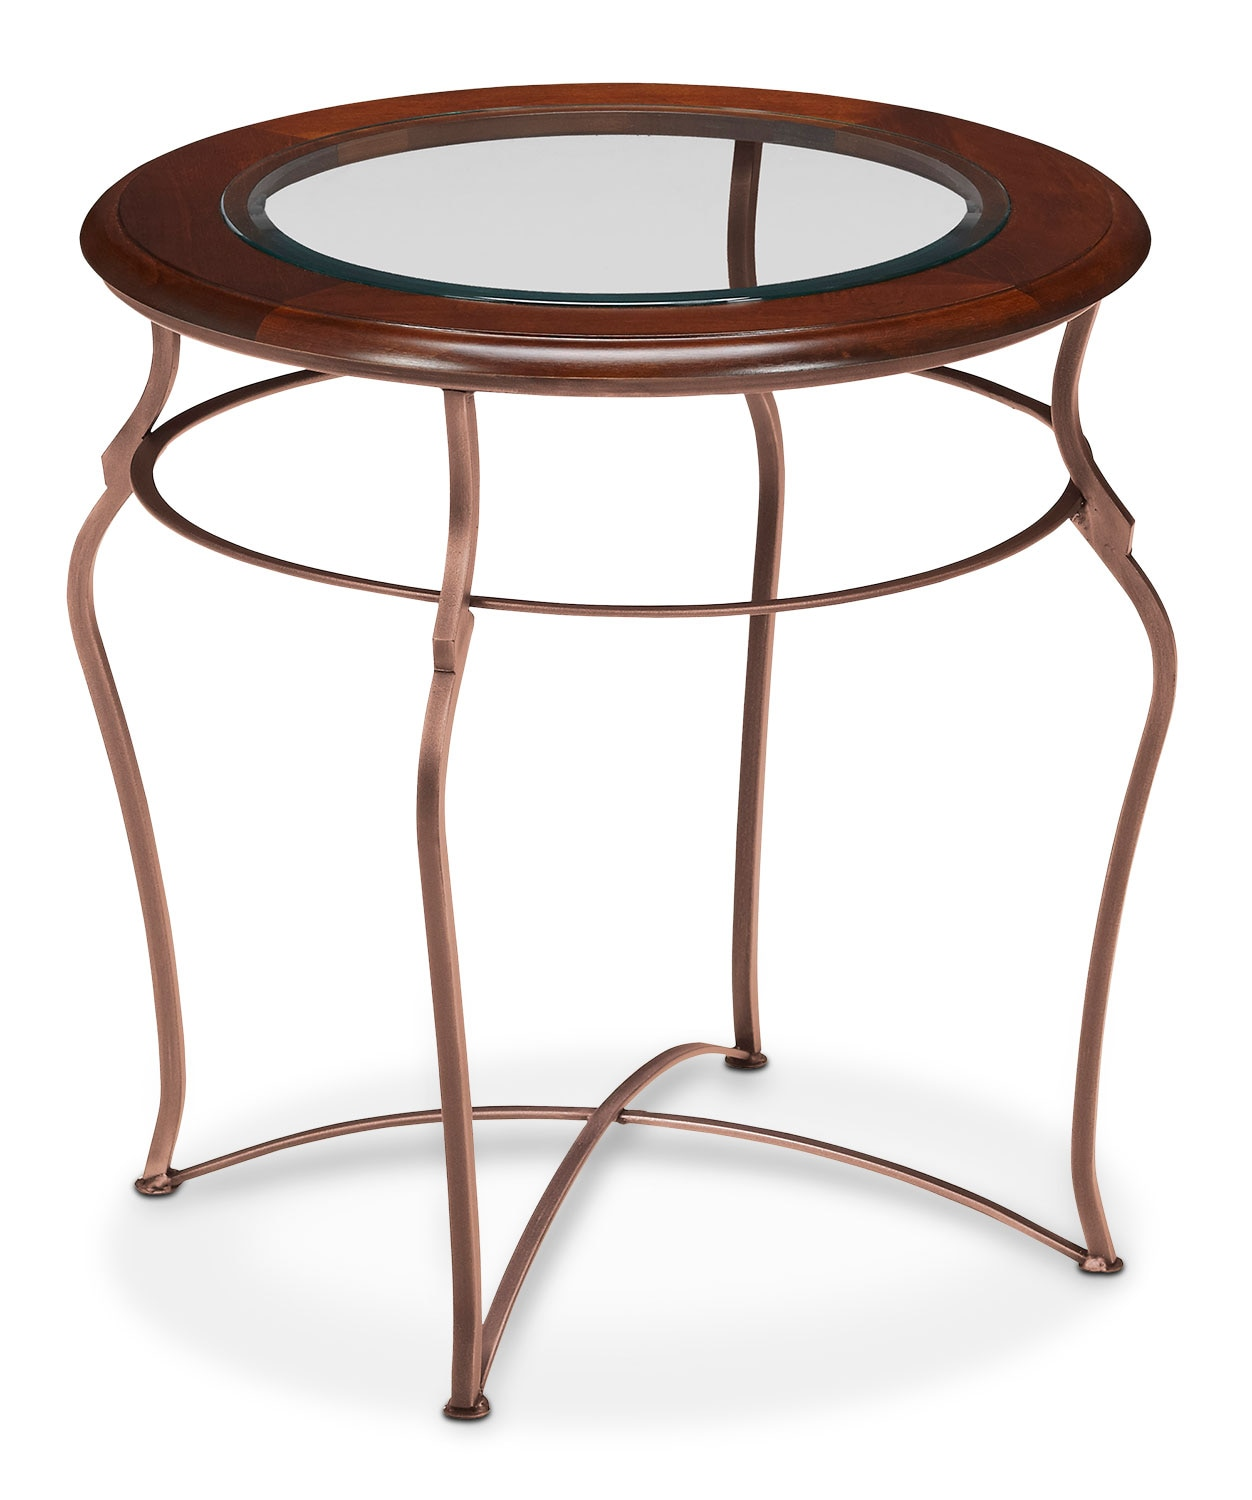 Online Only - Adele End Table - Glass Top with Copper Base